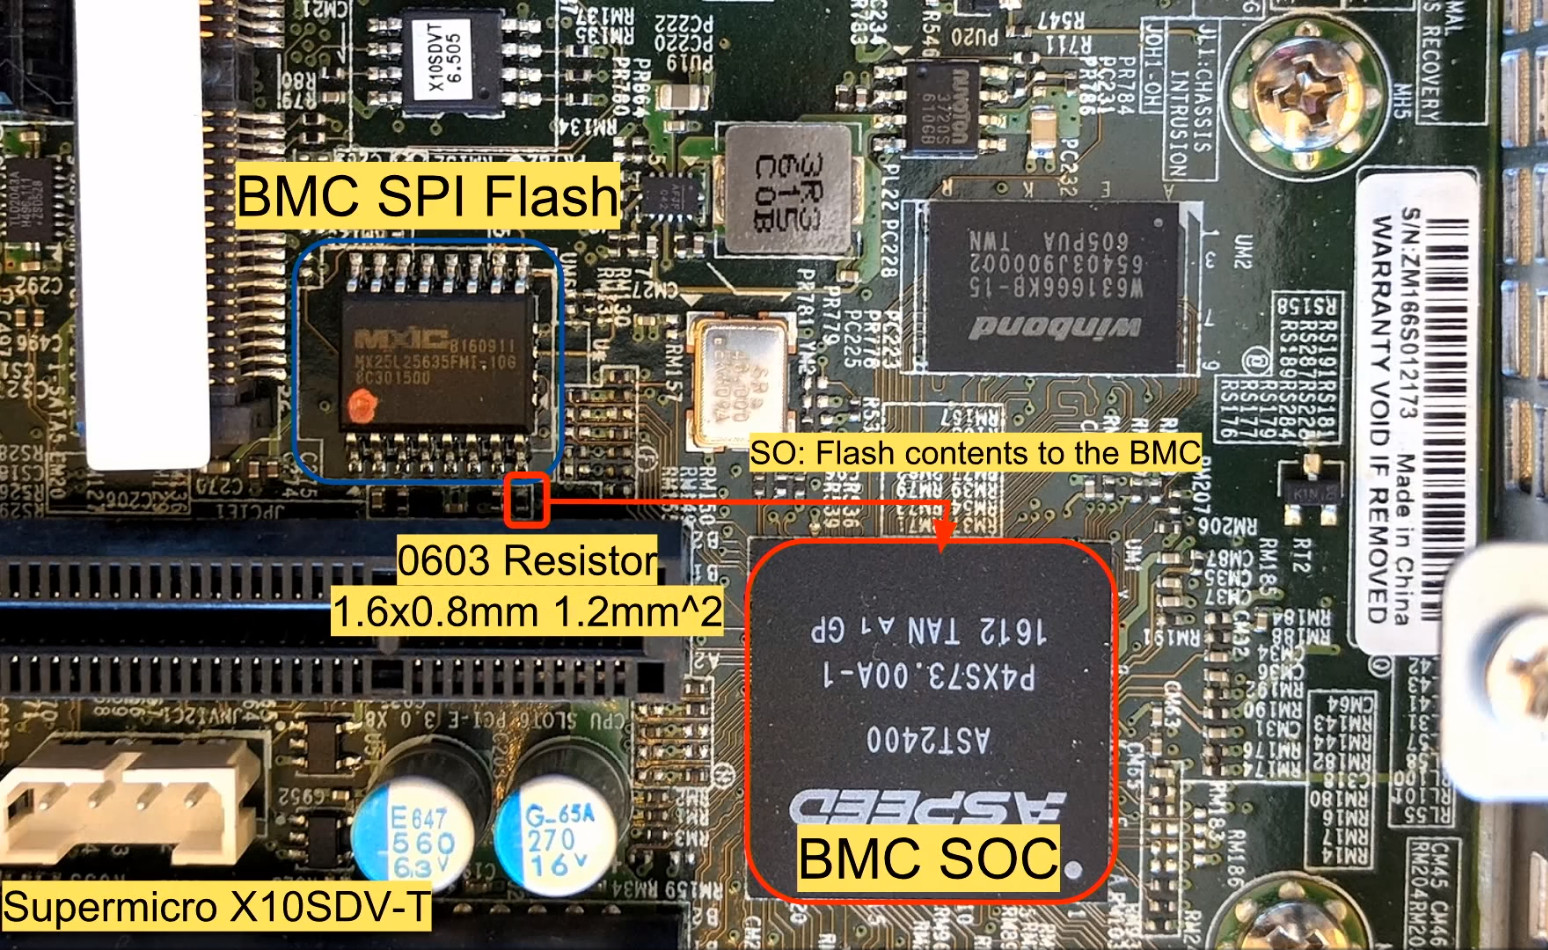 What Happened With Supermicro? | Hackaday